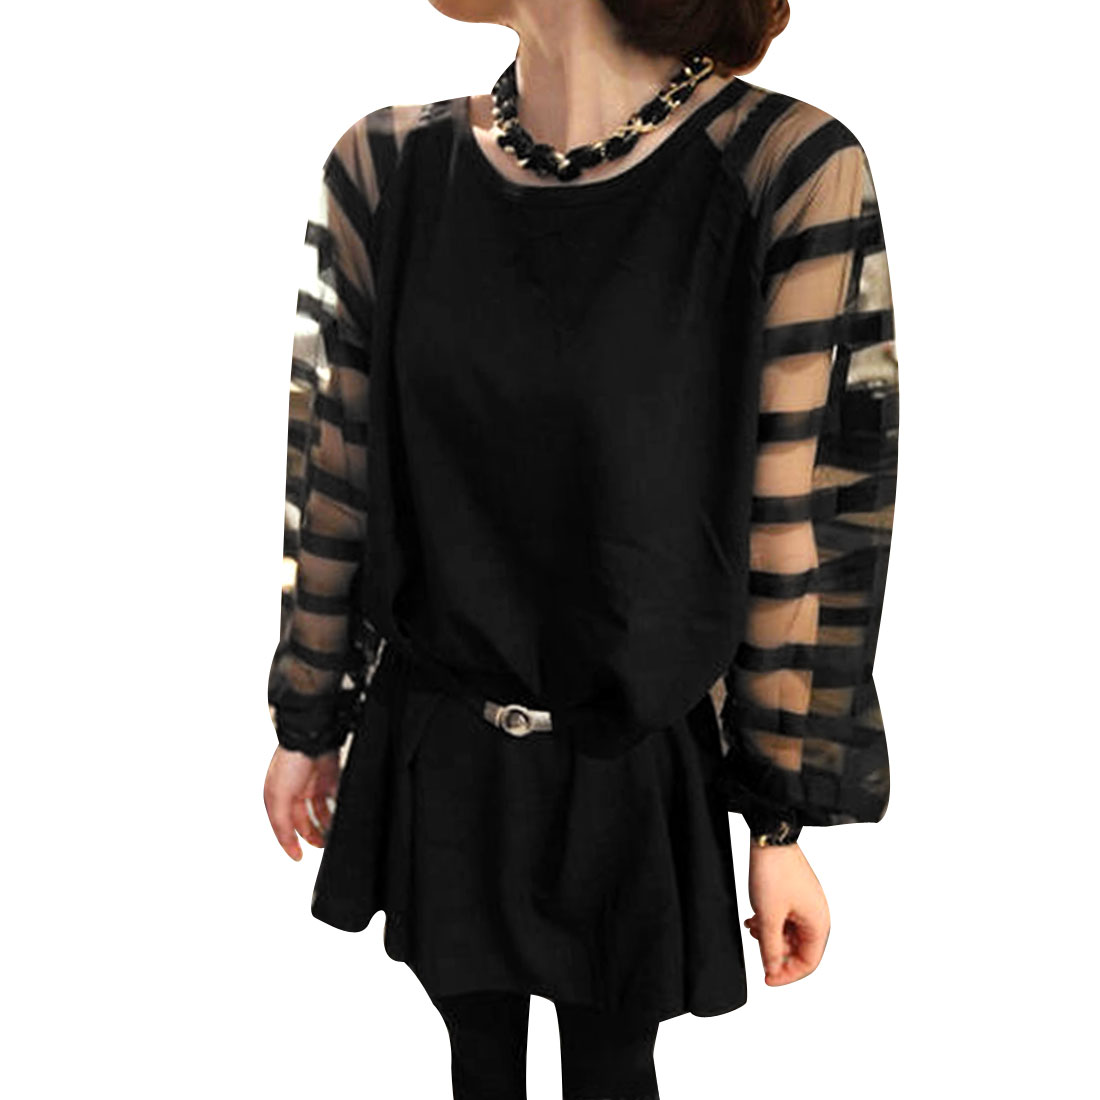 Women's Round Neck Gauze Semi-Sheer Long Raglan Sleeve Pullover Tops (Size S / 4)